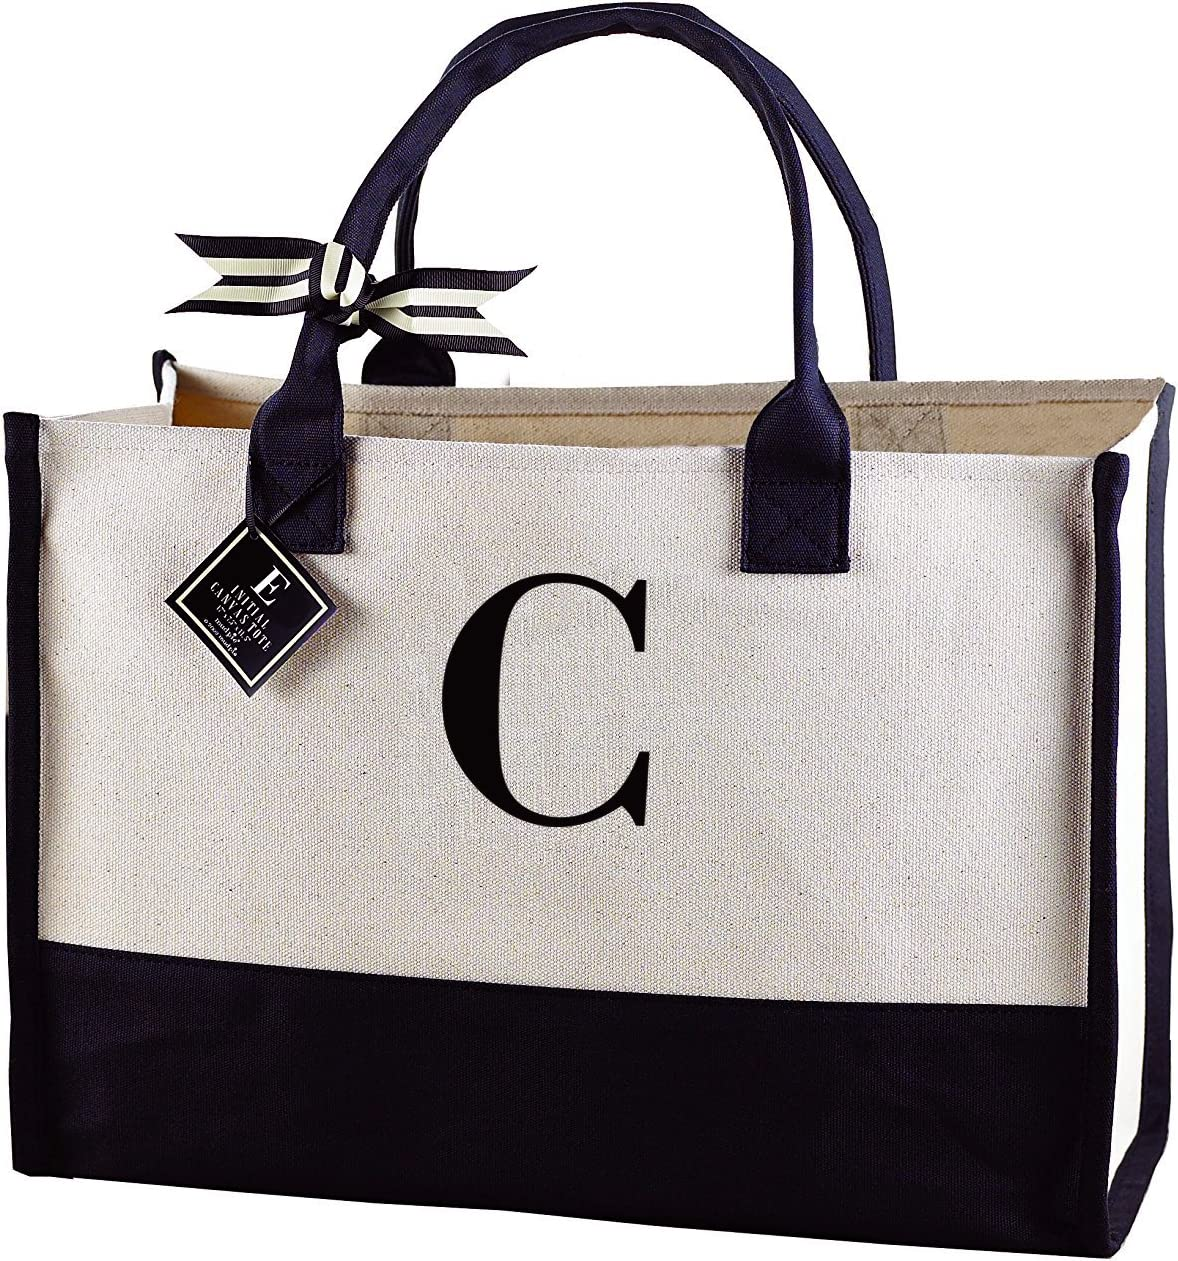 Mud Pie Initial Canvas Tote Bags